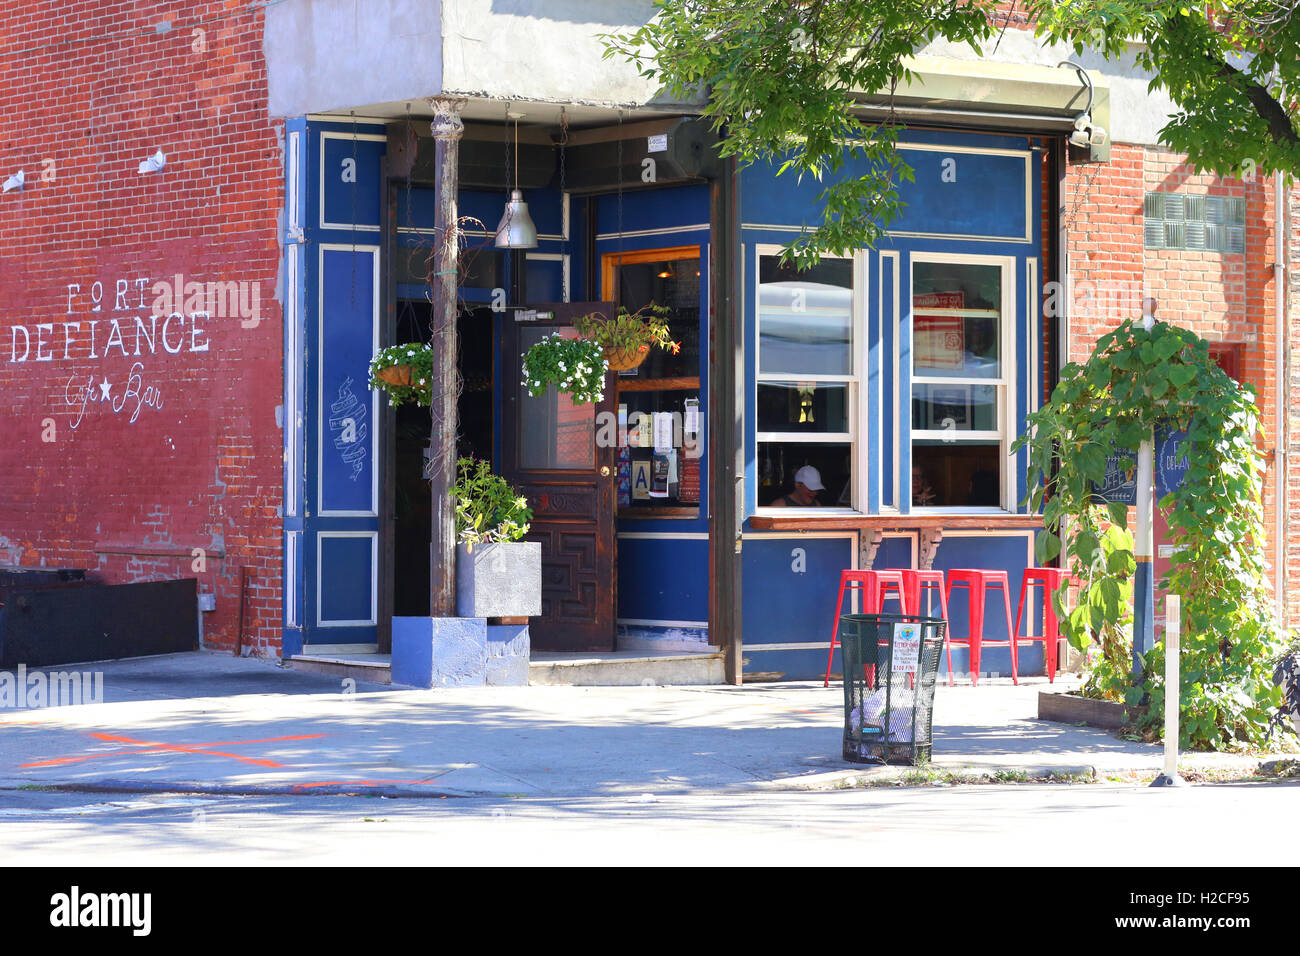 Fort Defiance cafe, 365 Van Brunt St, Brooklyn, NY. - Stock Image